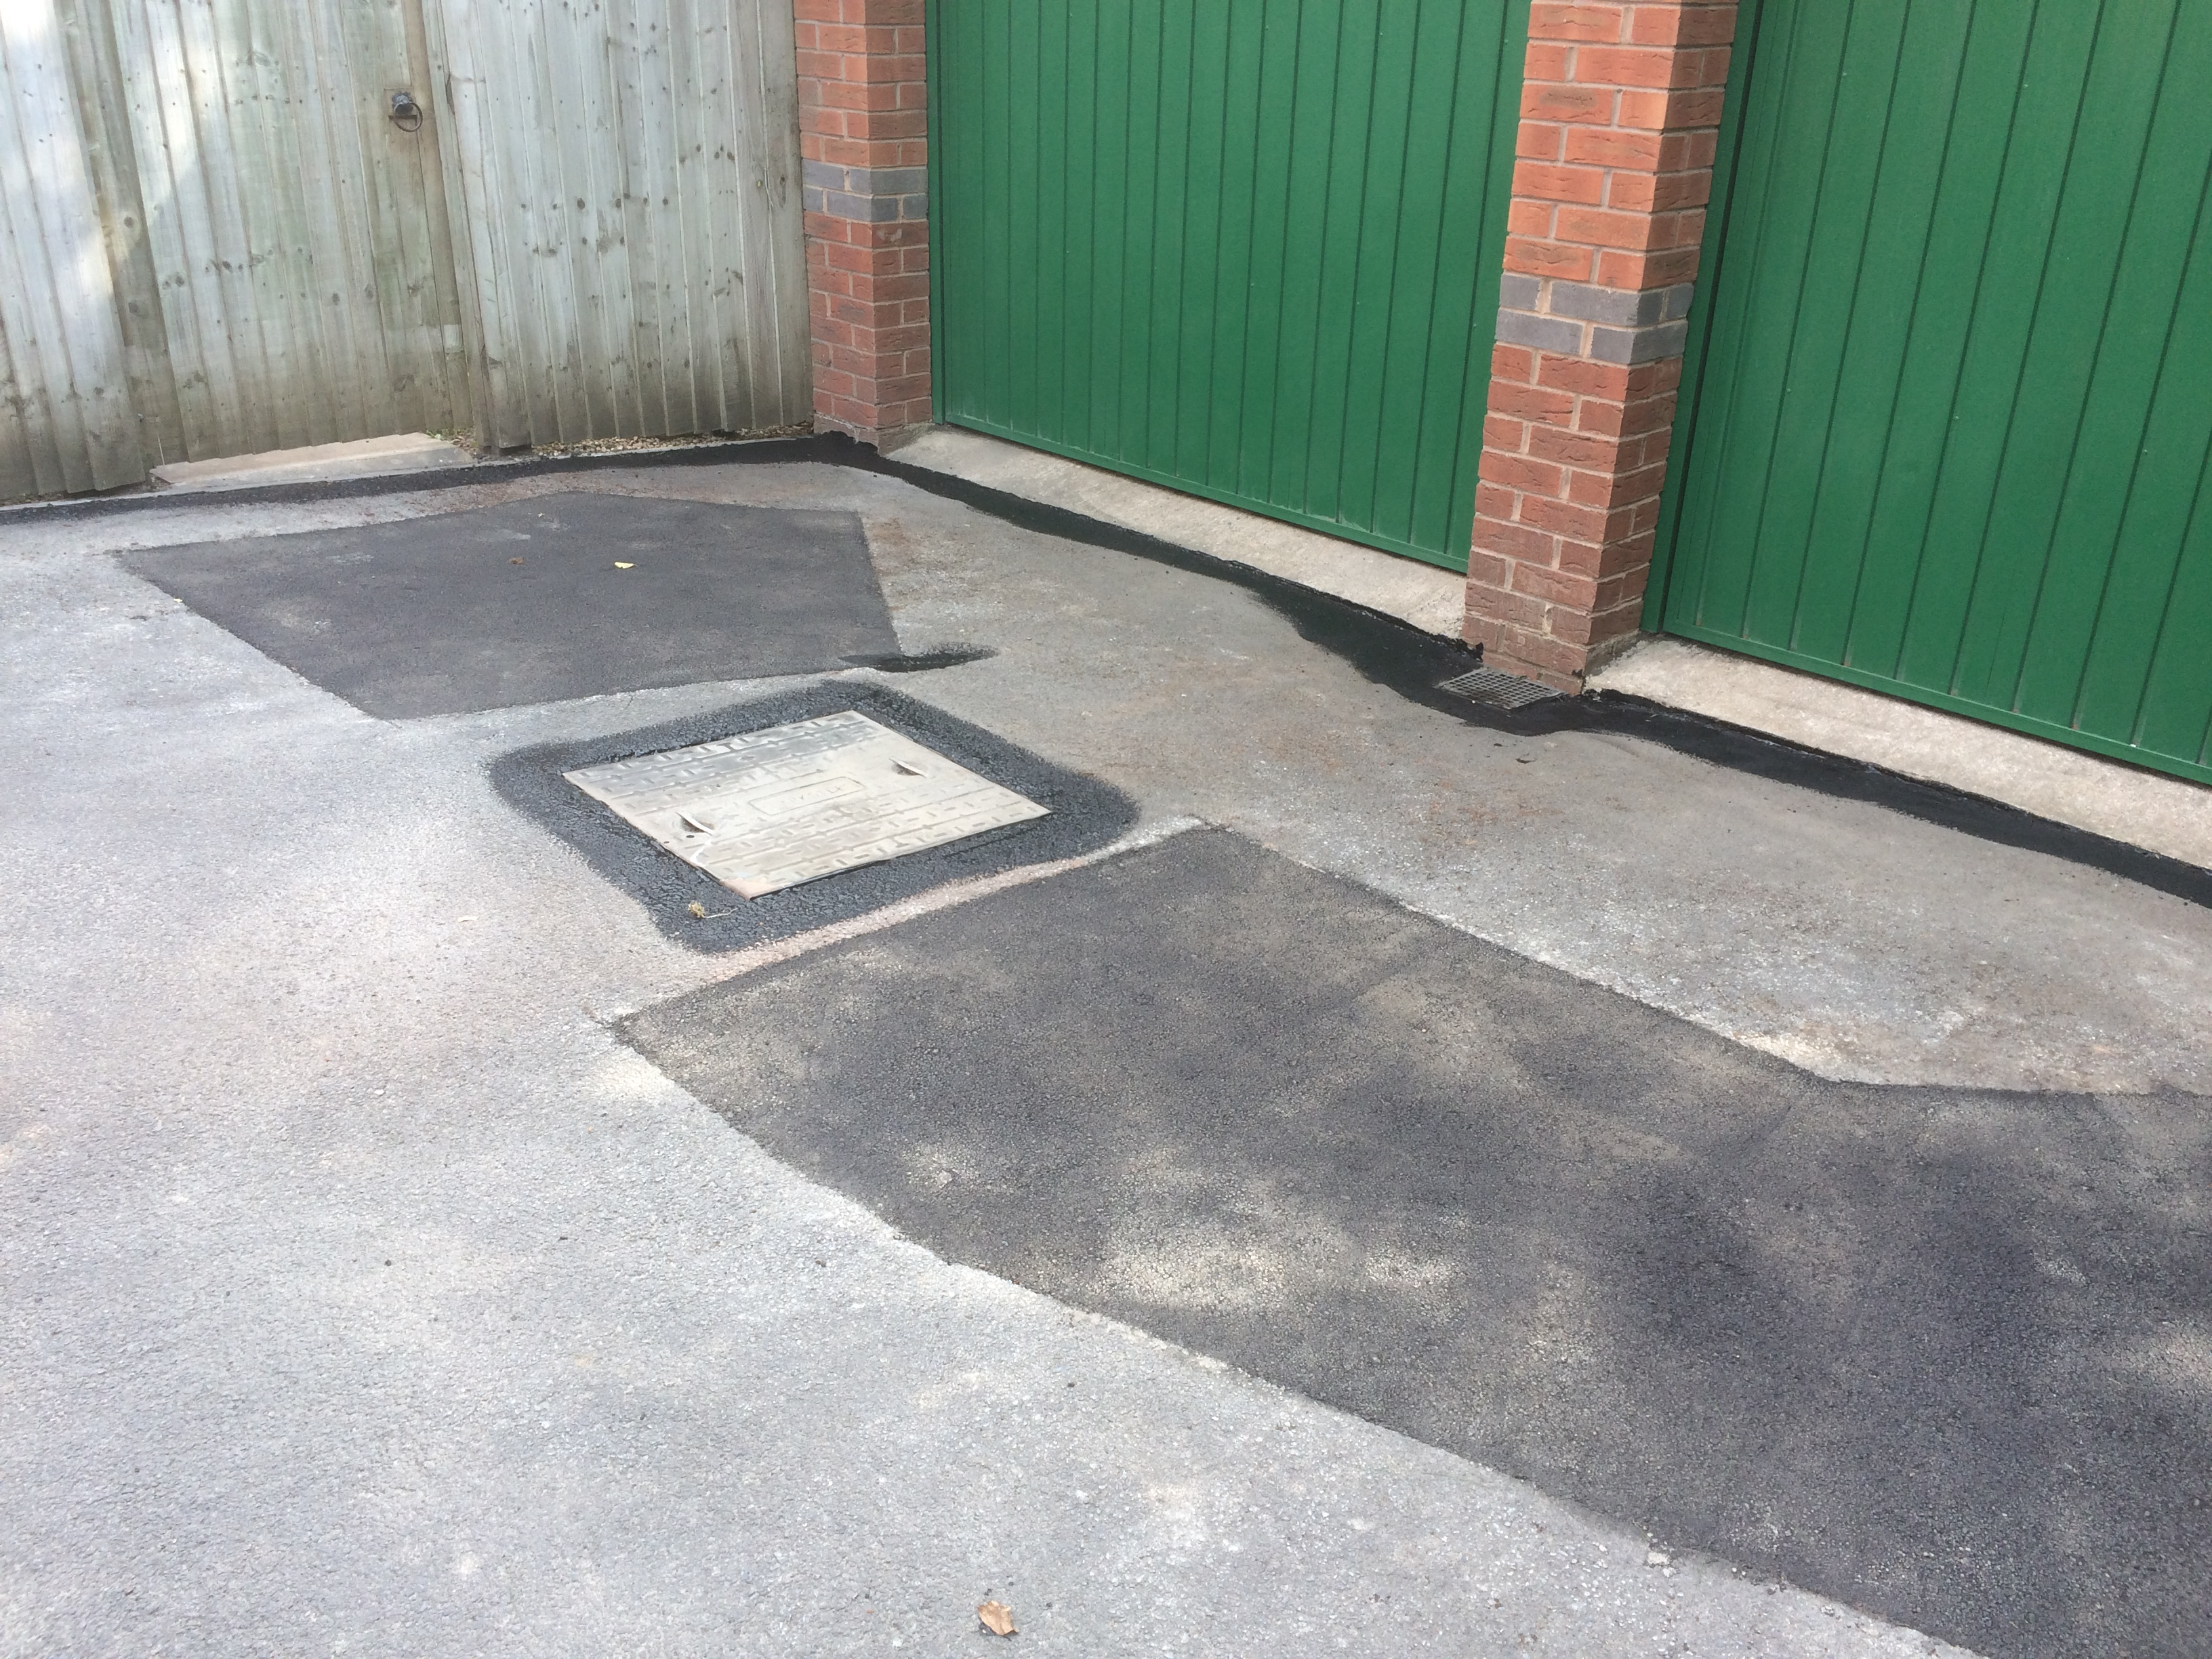 sunken areas repaired